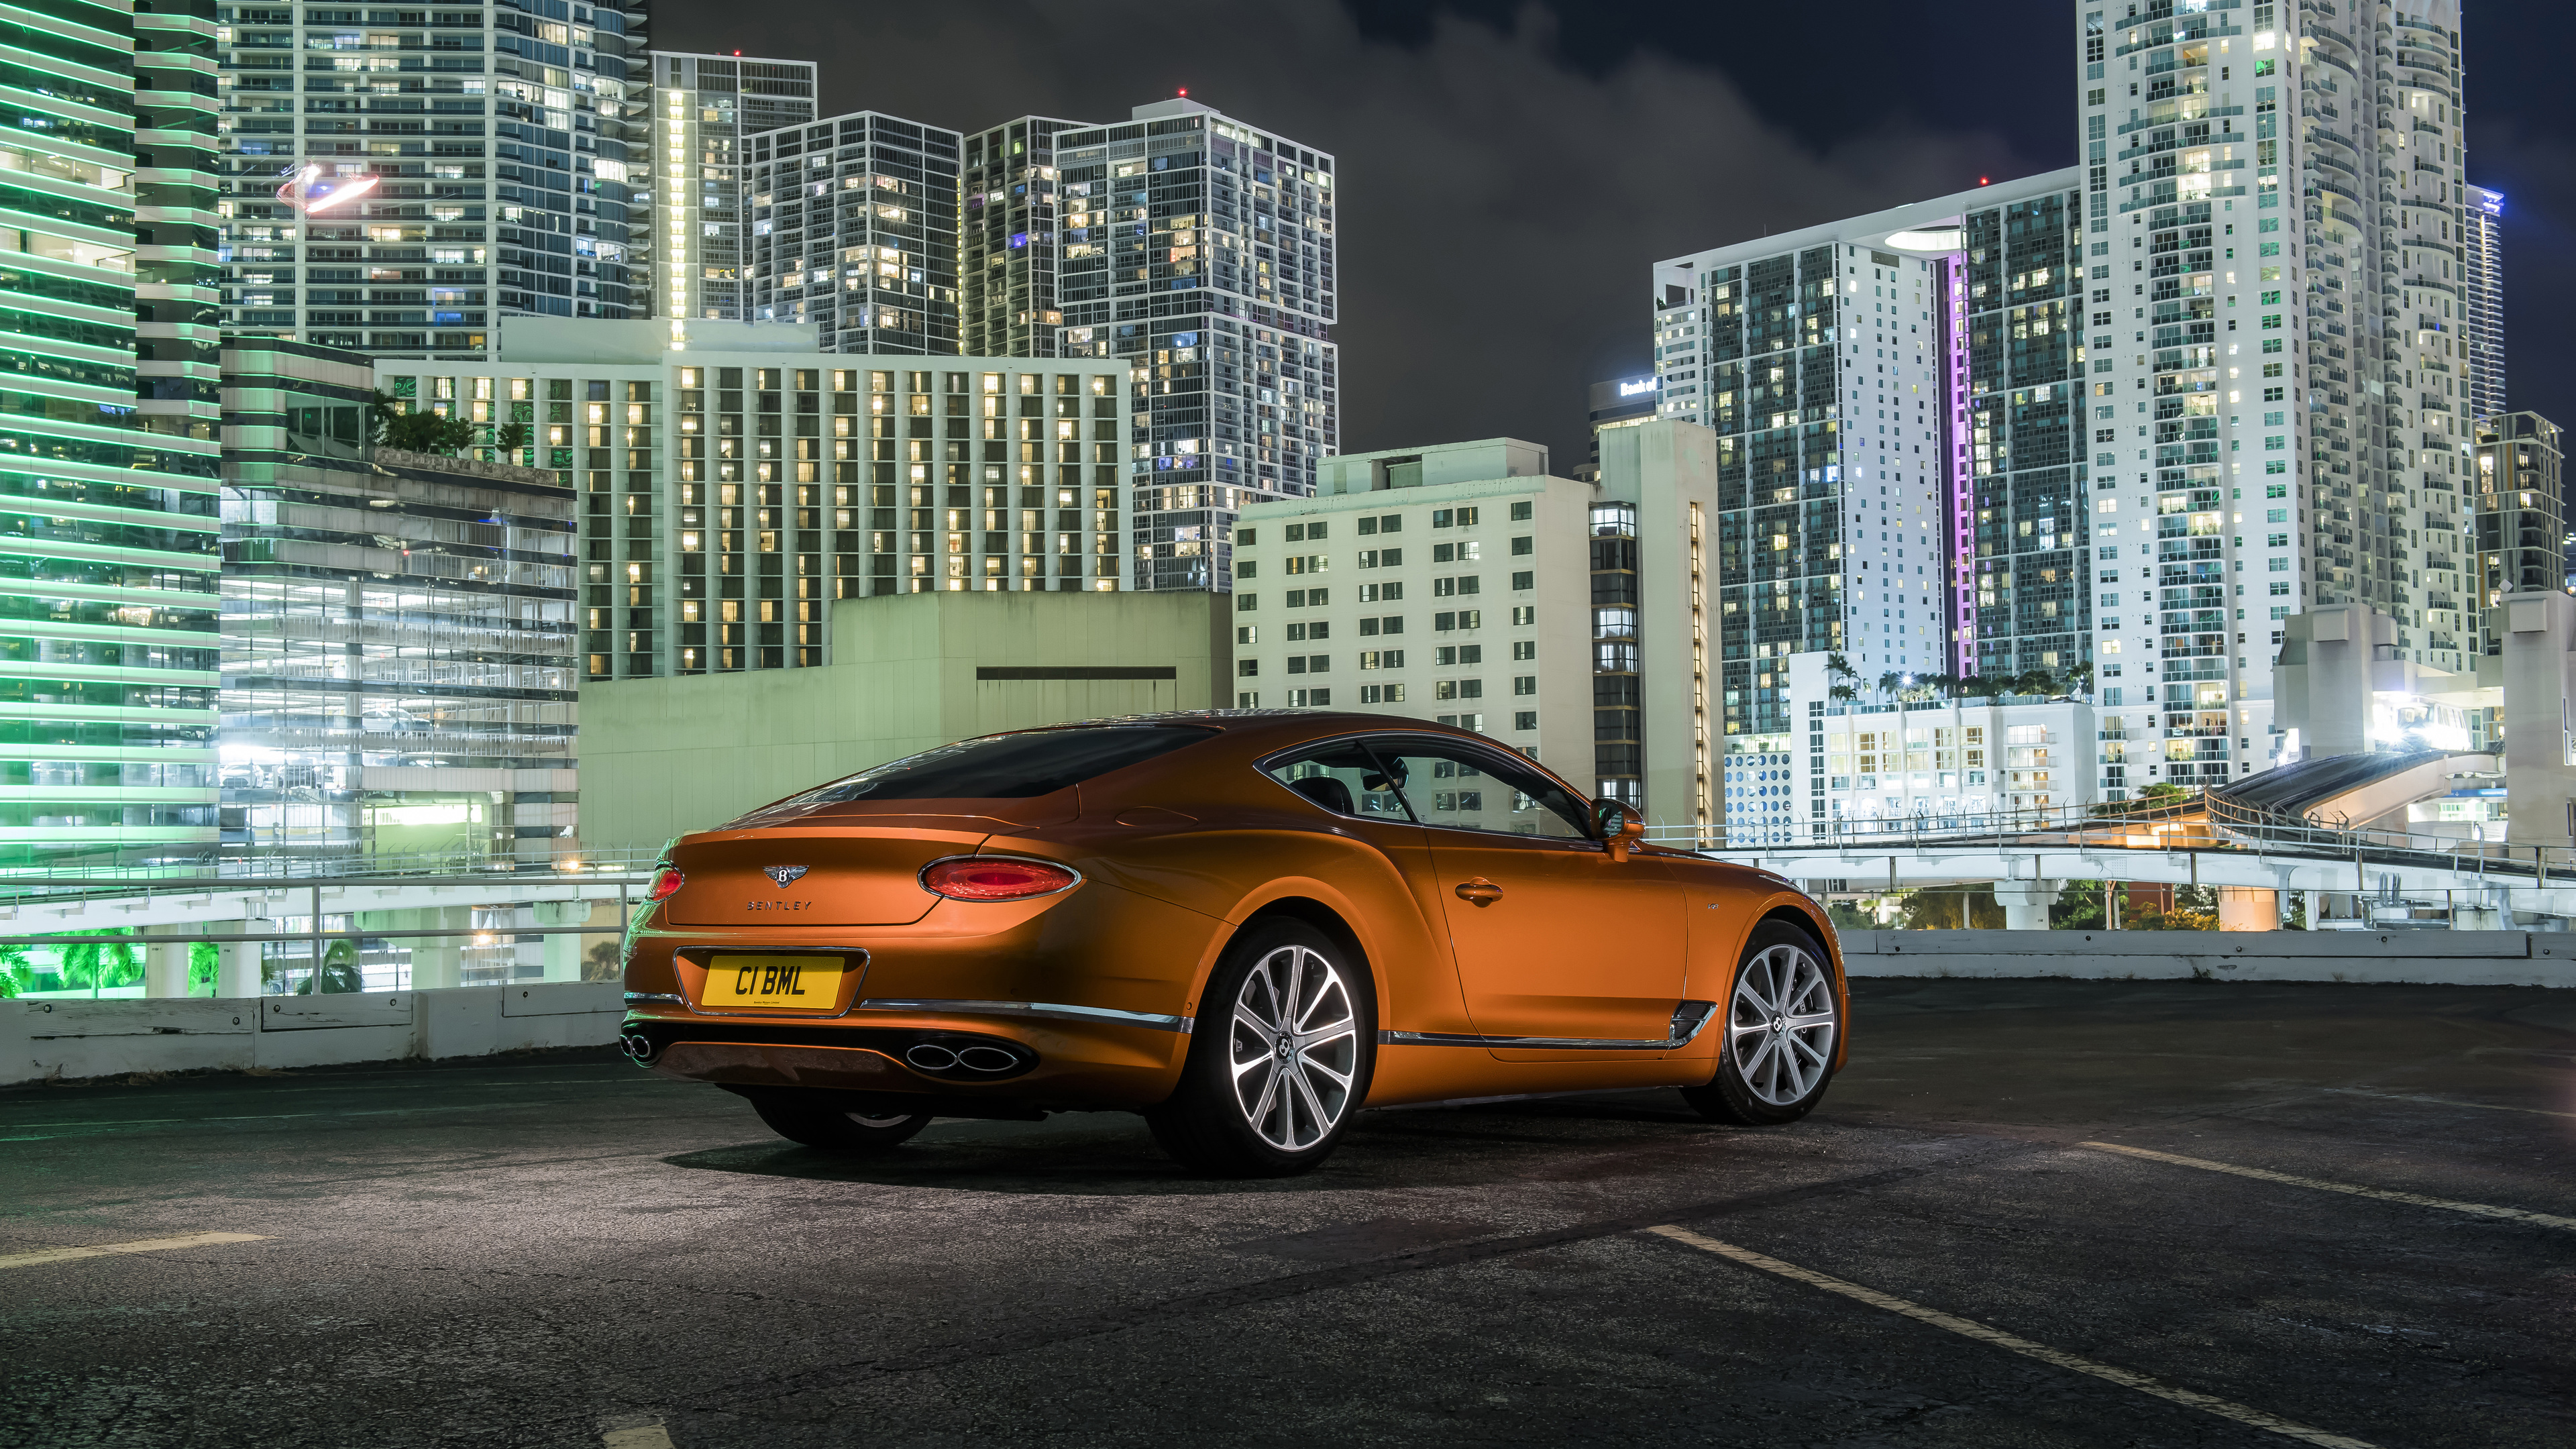 2019 bentley continental gt v8 rear 4k 1554245138 - 2019 Bentley Continental GT V8 Rear 4k - hd-wallpapers, cars wallpapers, bentley wallpapers, bentley continental gt wallpapers, 8k wallpapers, 5k wallpapers, 4k-wallpapers, 2019 cars wallpapers